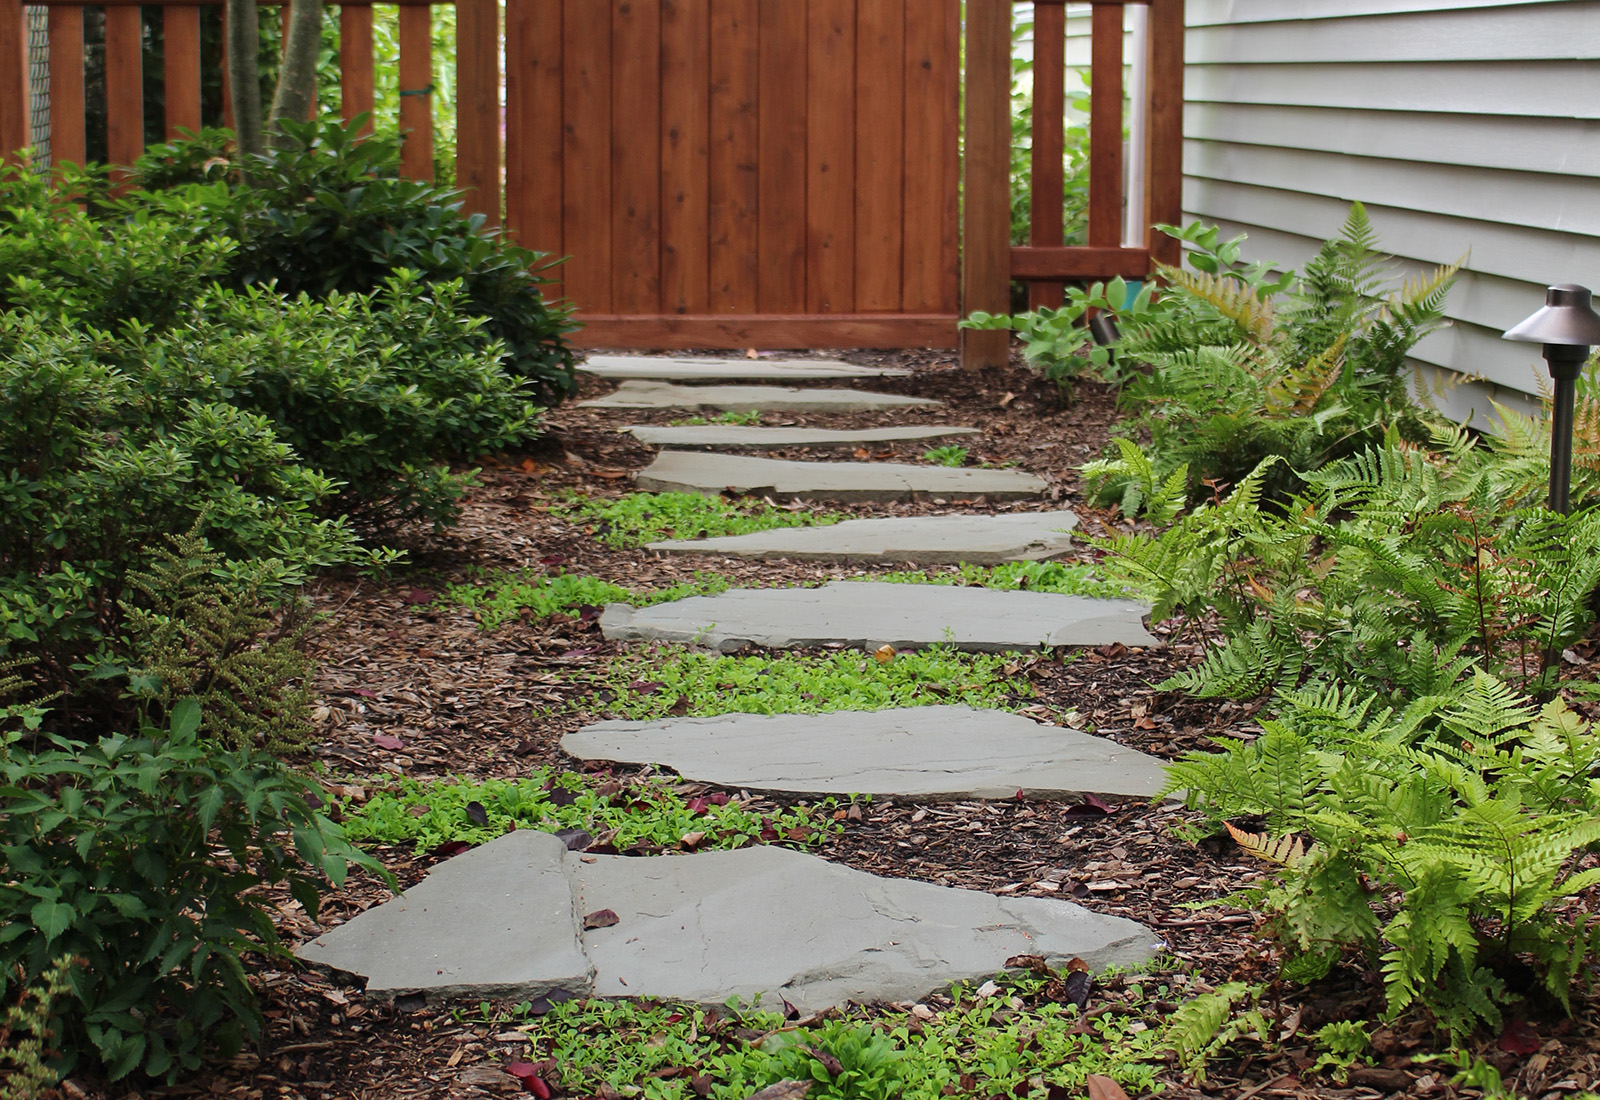 Custom wood gate and a natural stone garden path.